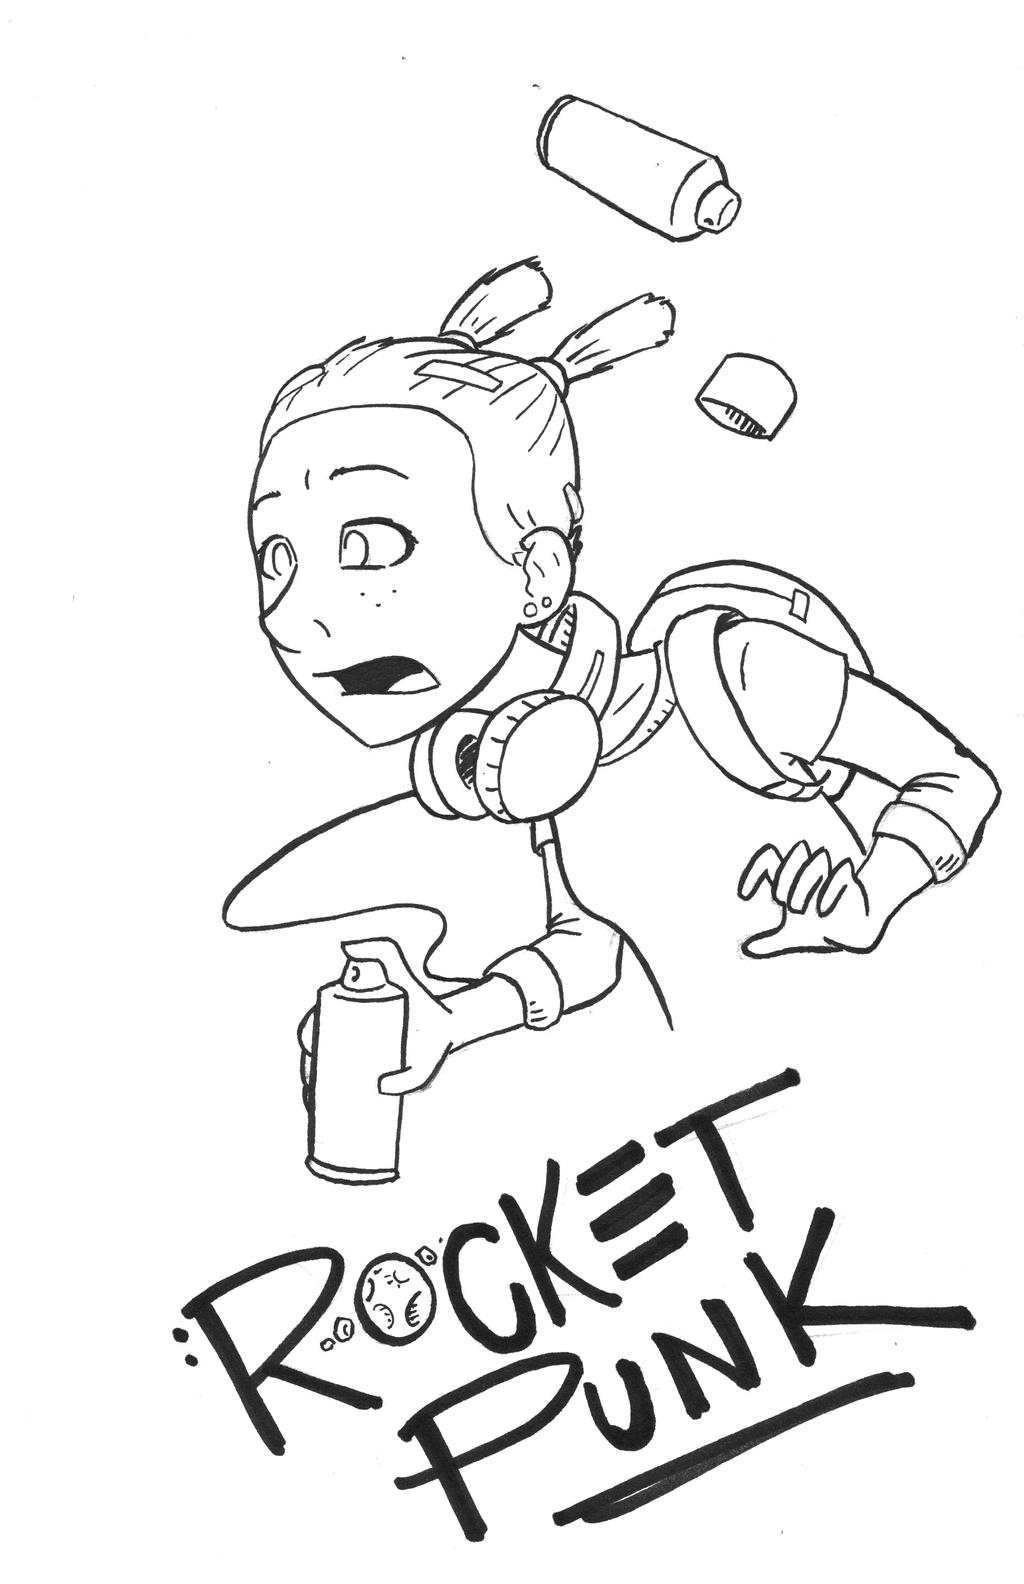 Rocket Punk by CarbonComic